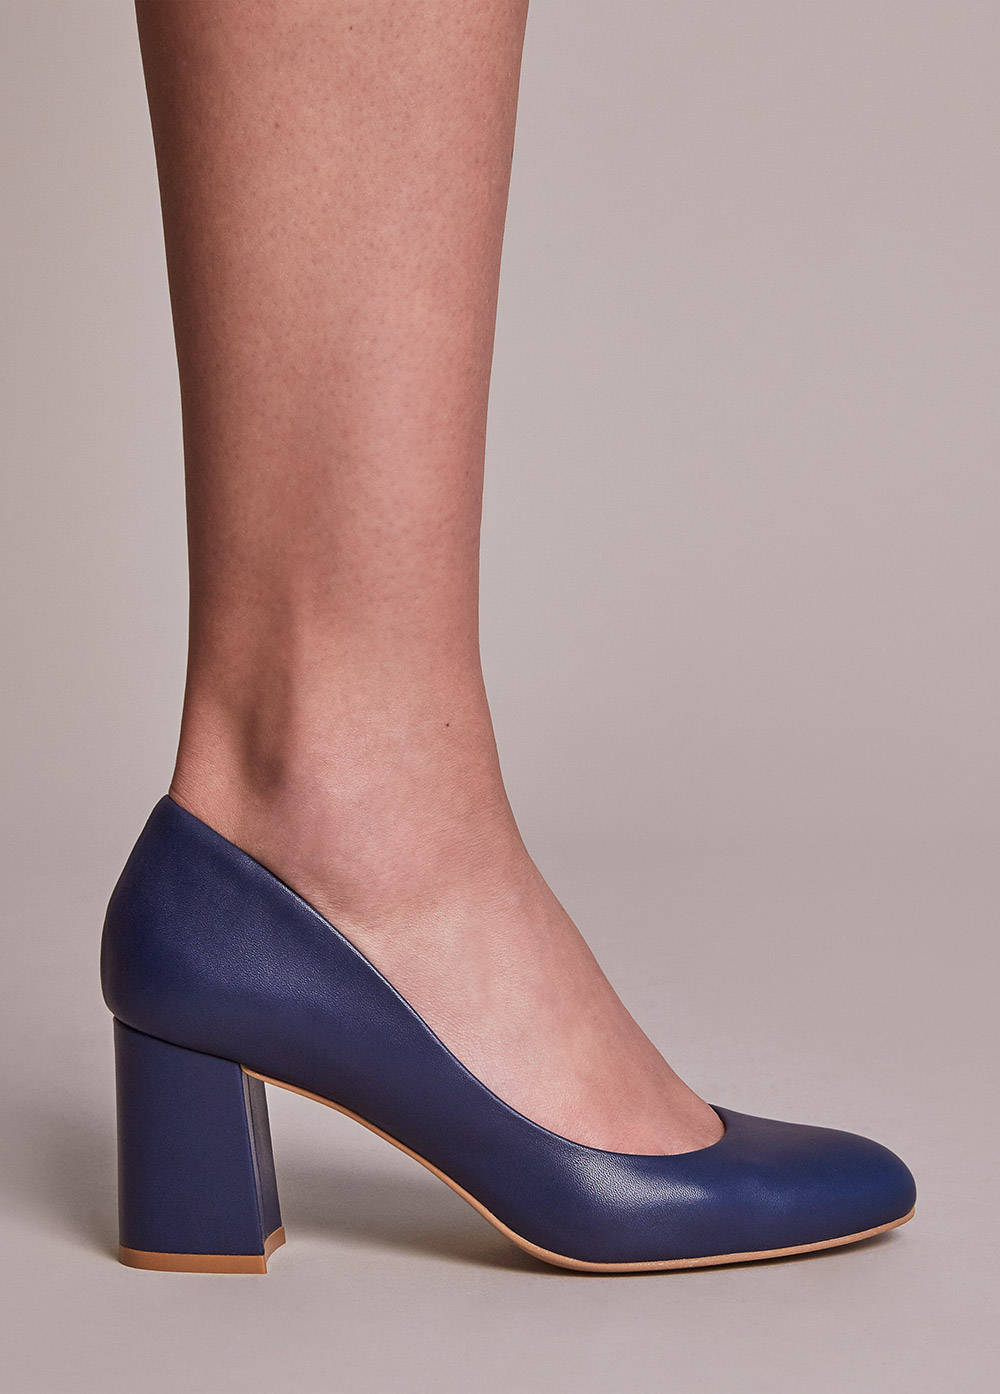 Navy leather 3 inch heels